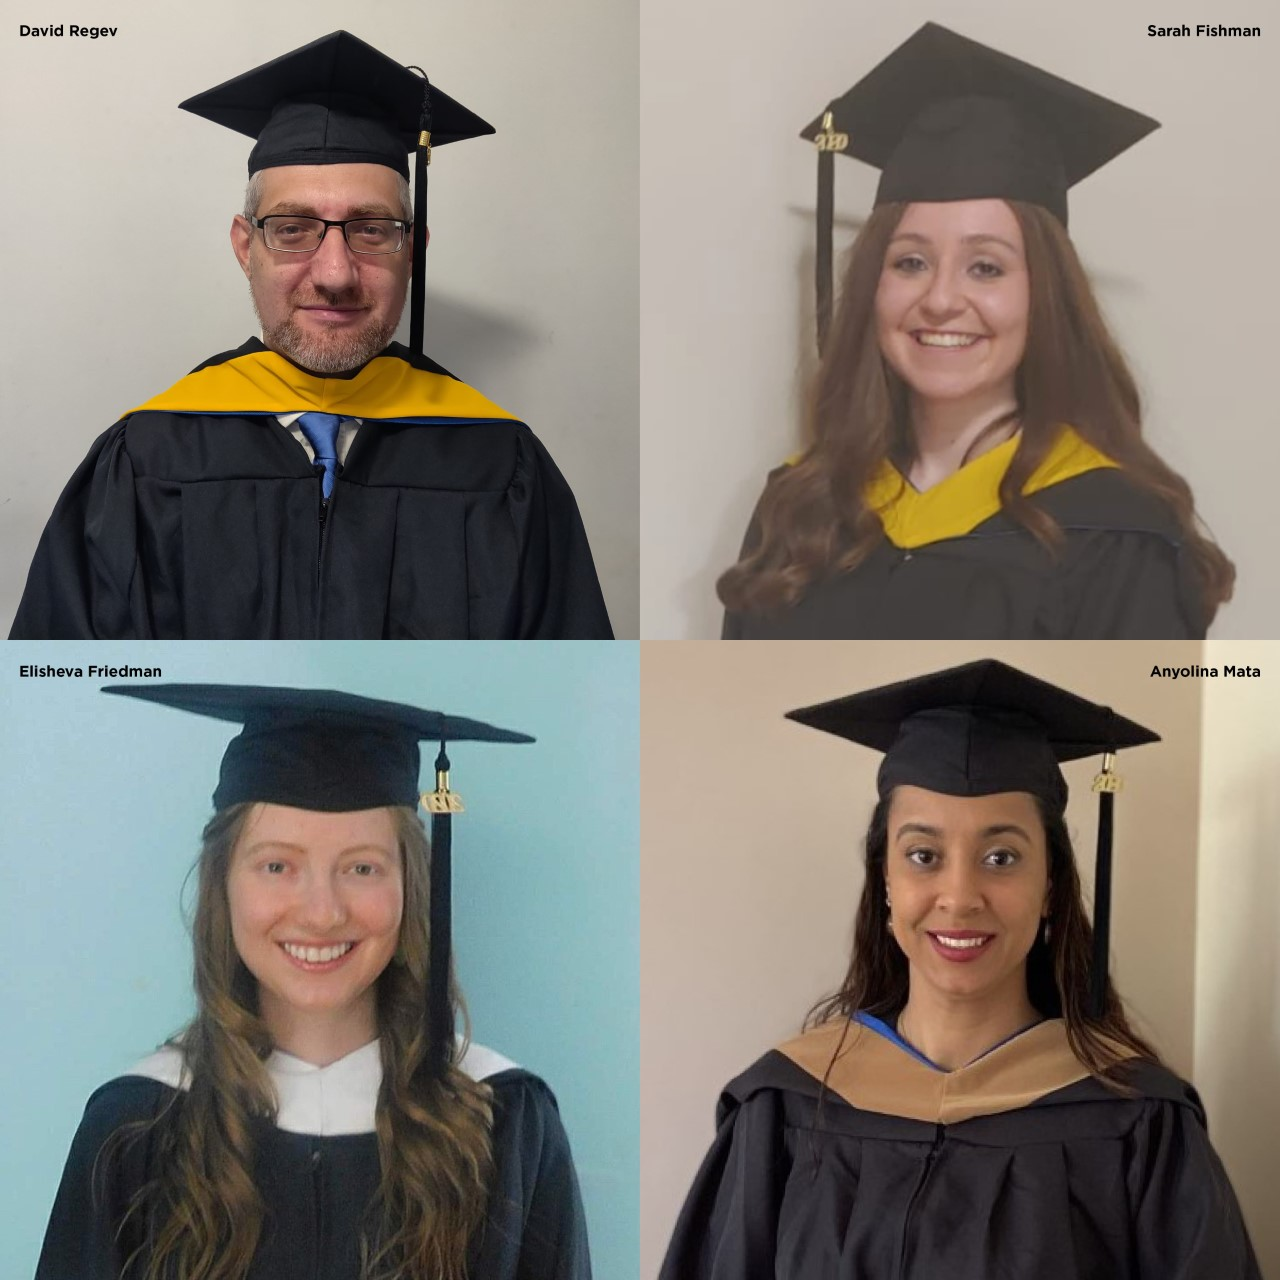 Valedictorians at Division of Graduate Studies Commencement 2020